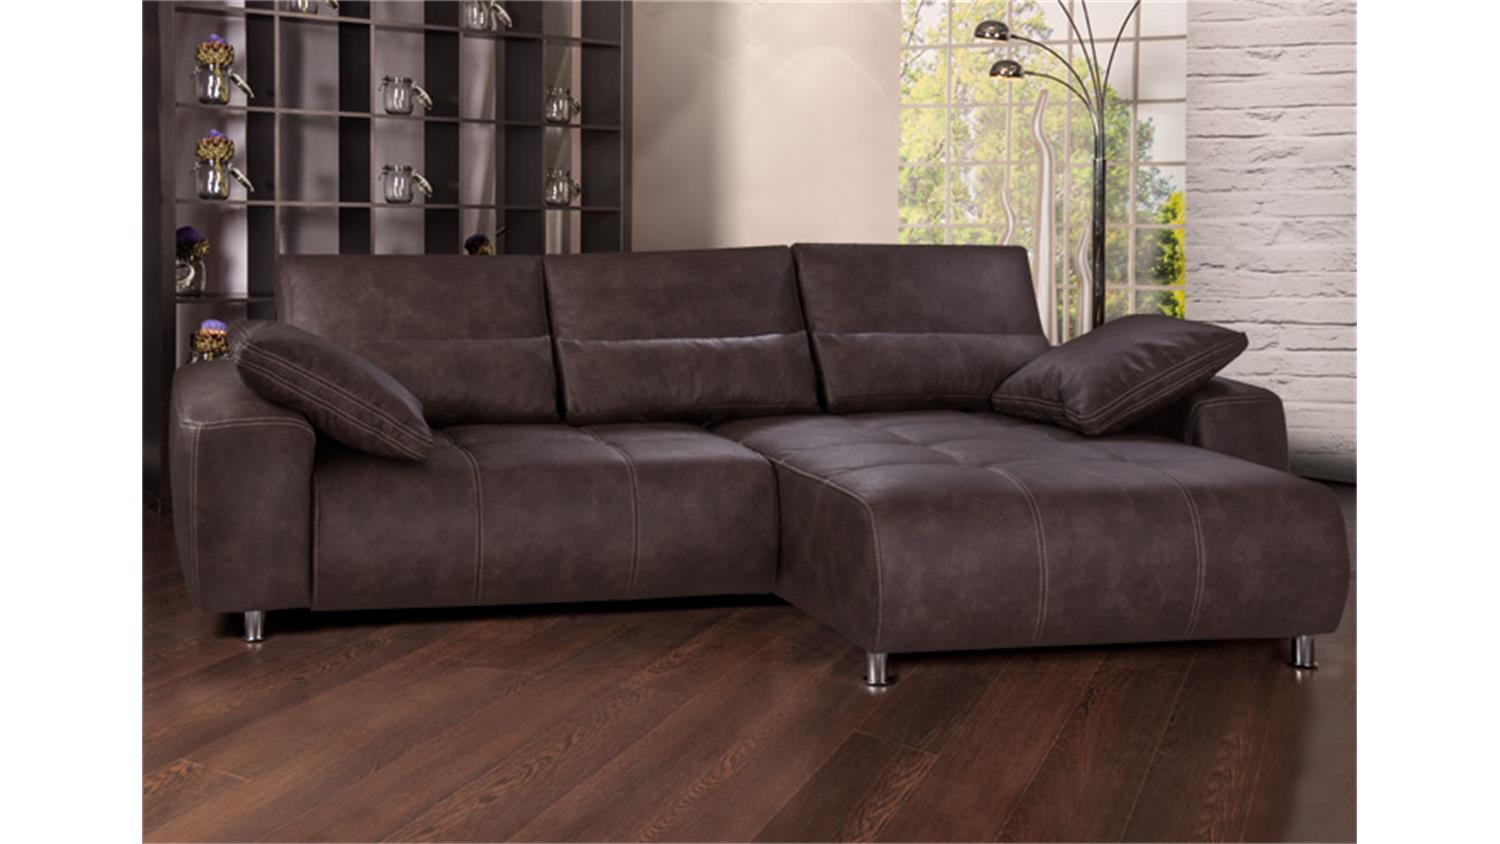 Ecksofa briatore mit bettfunktion und bettkasten braun for Sofaecke mit bettfunktion